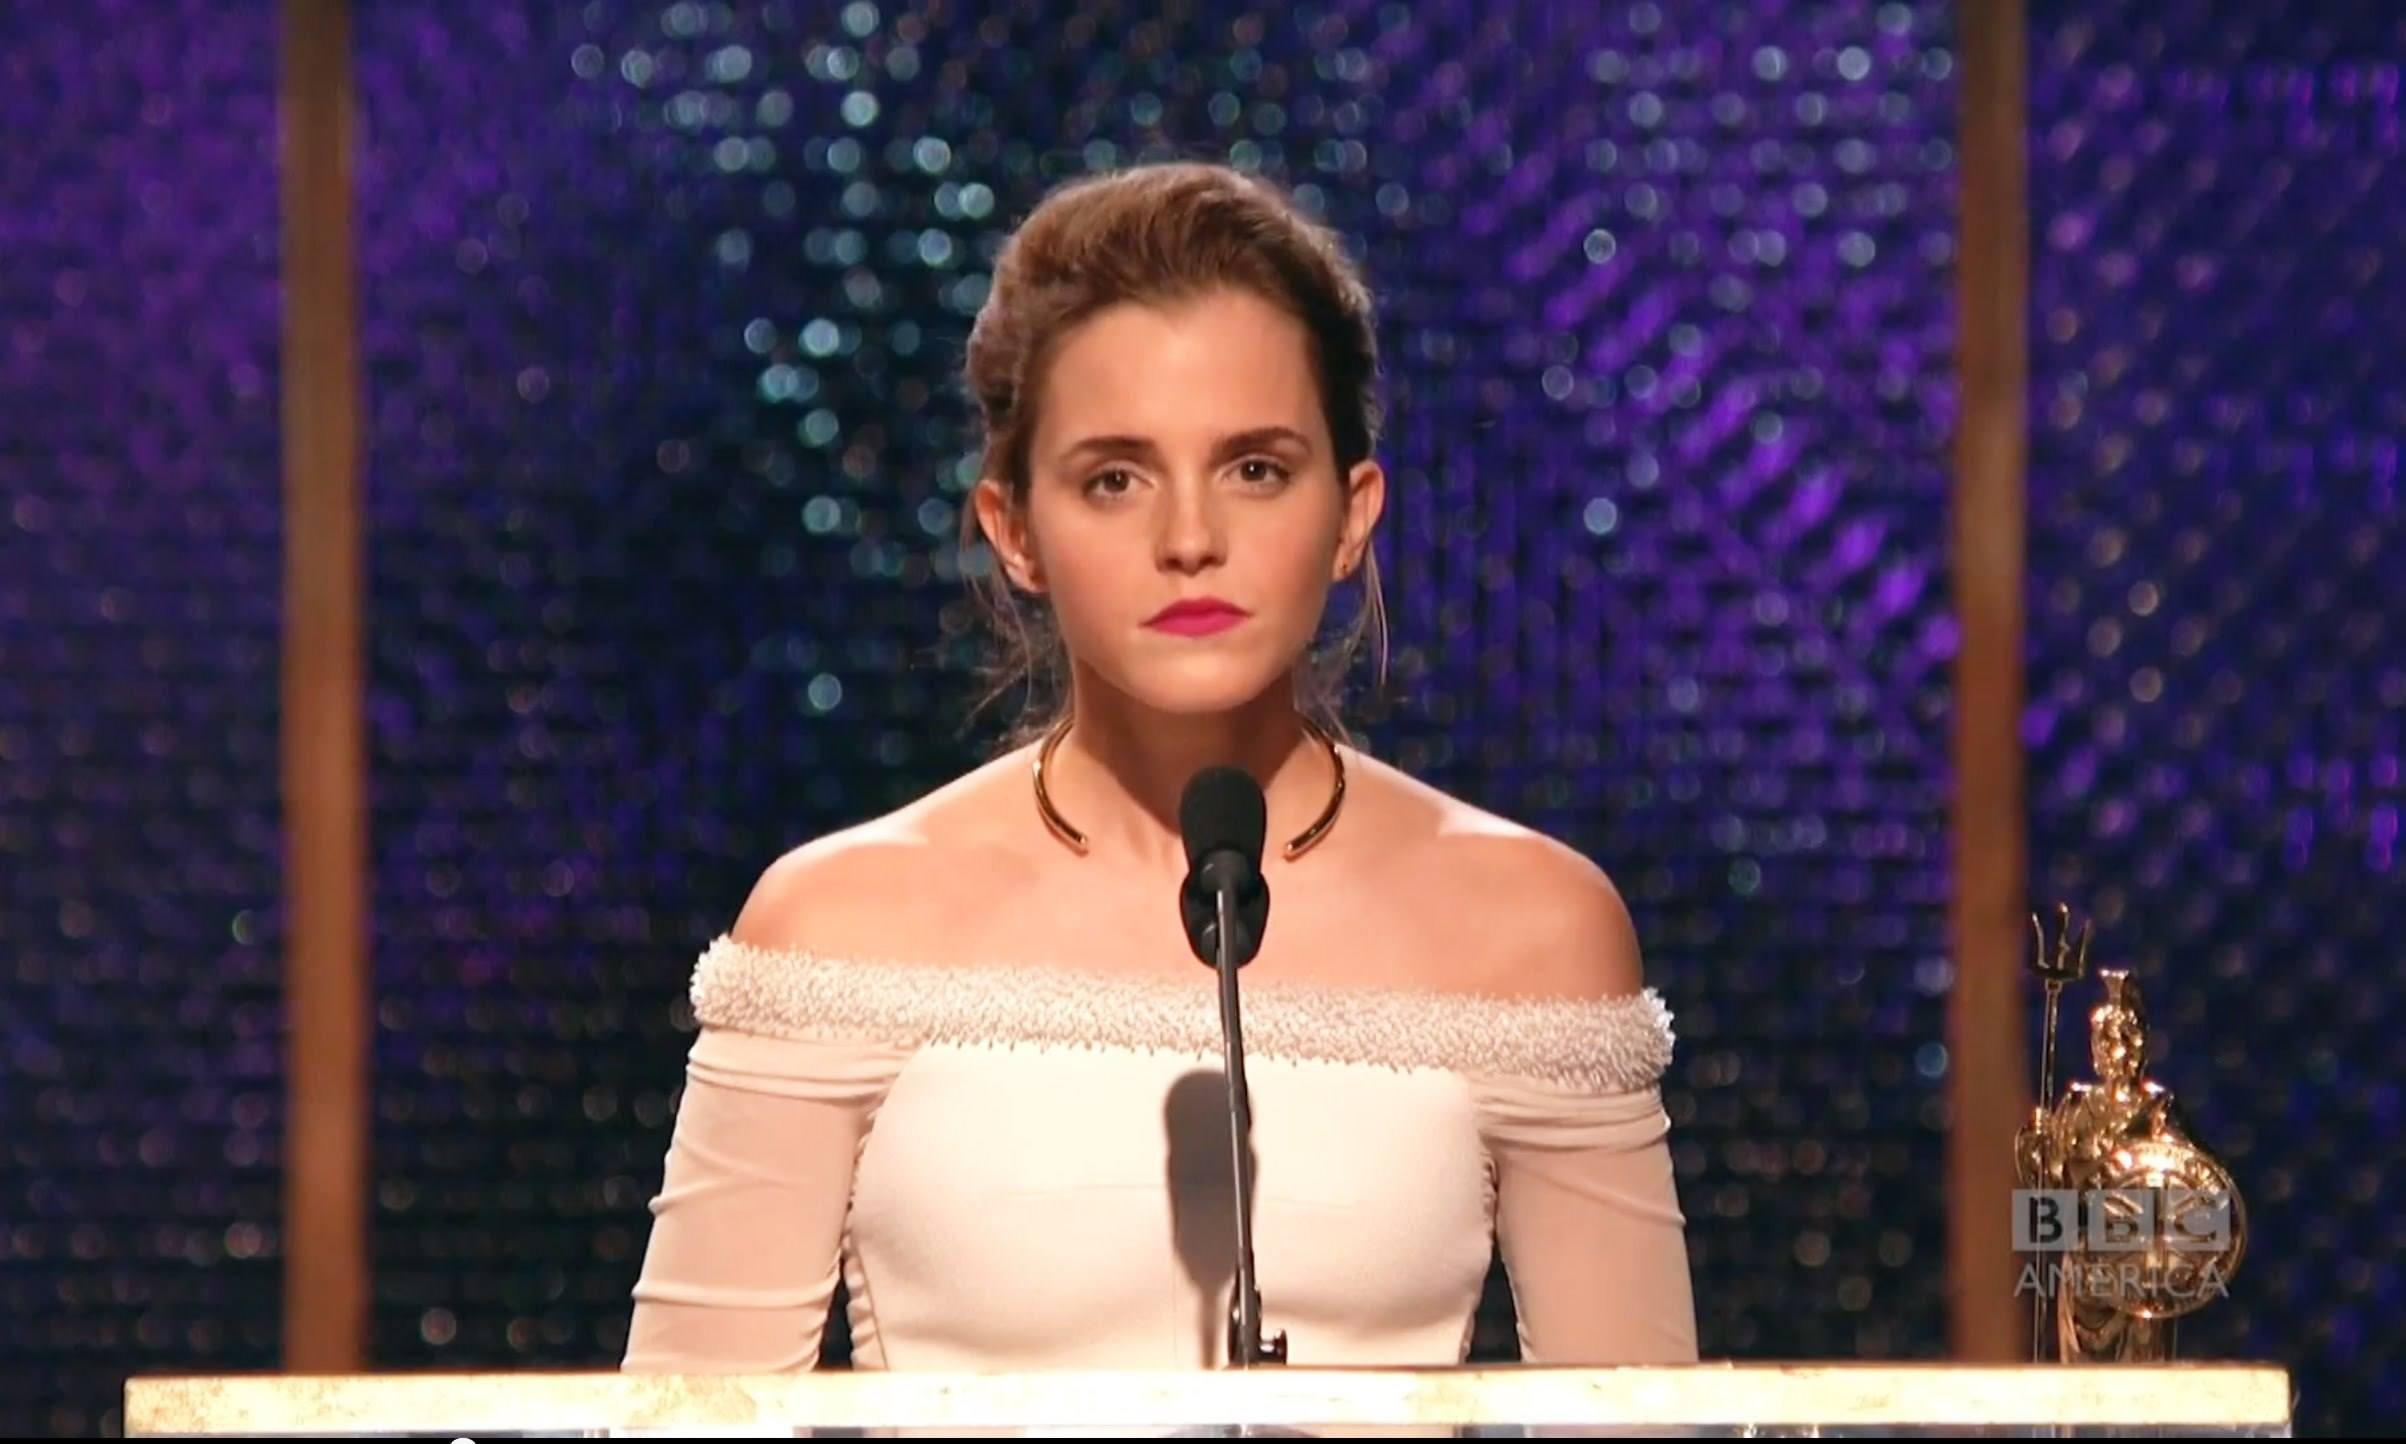 Watch Emma Watson Give The Most Awkward Shoutout While Accepting Her Award